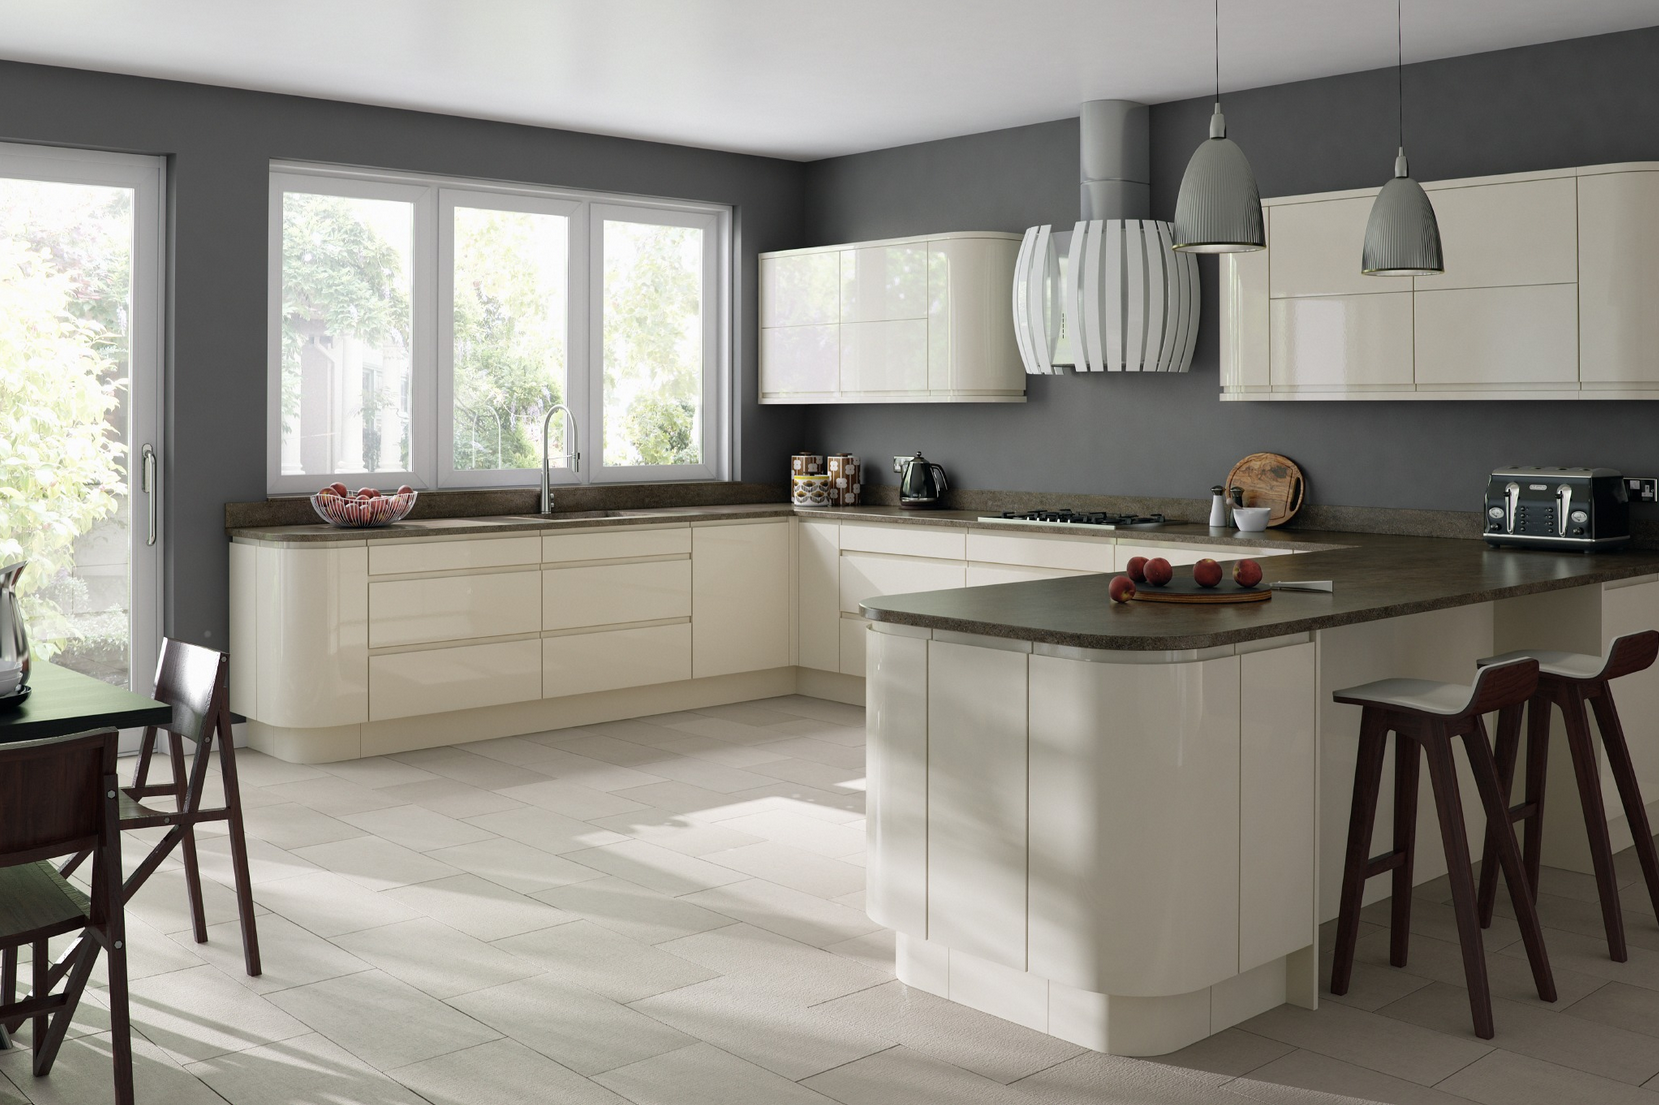 Download Wallpaper Replacement Kitchen Cabinet Doors White Gloss